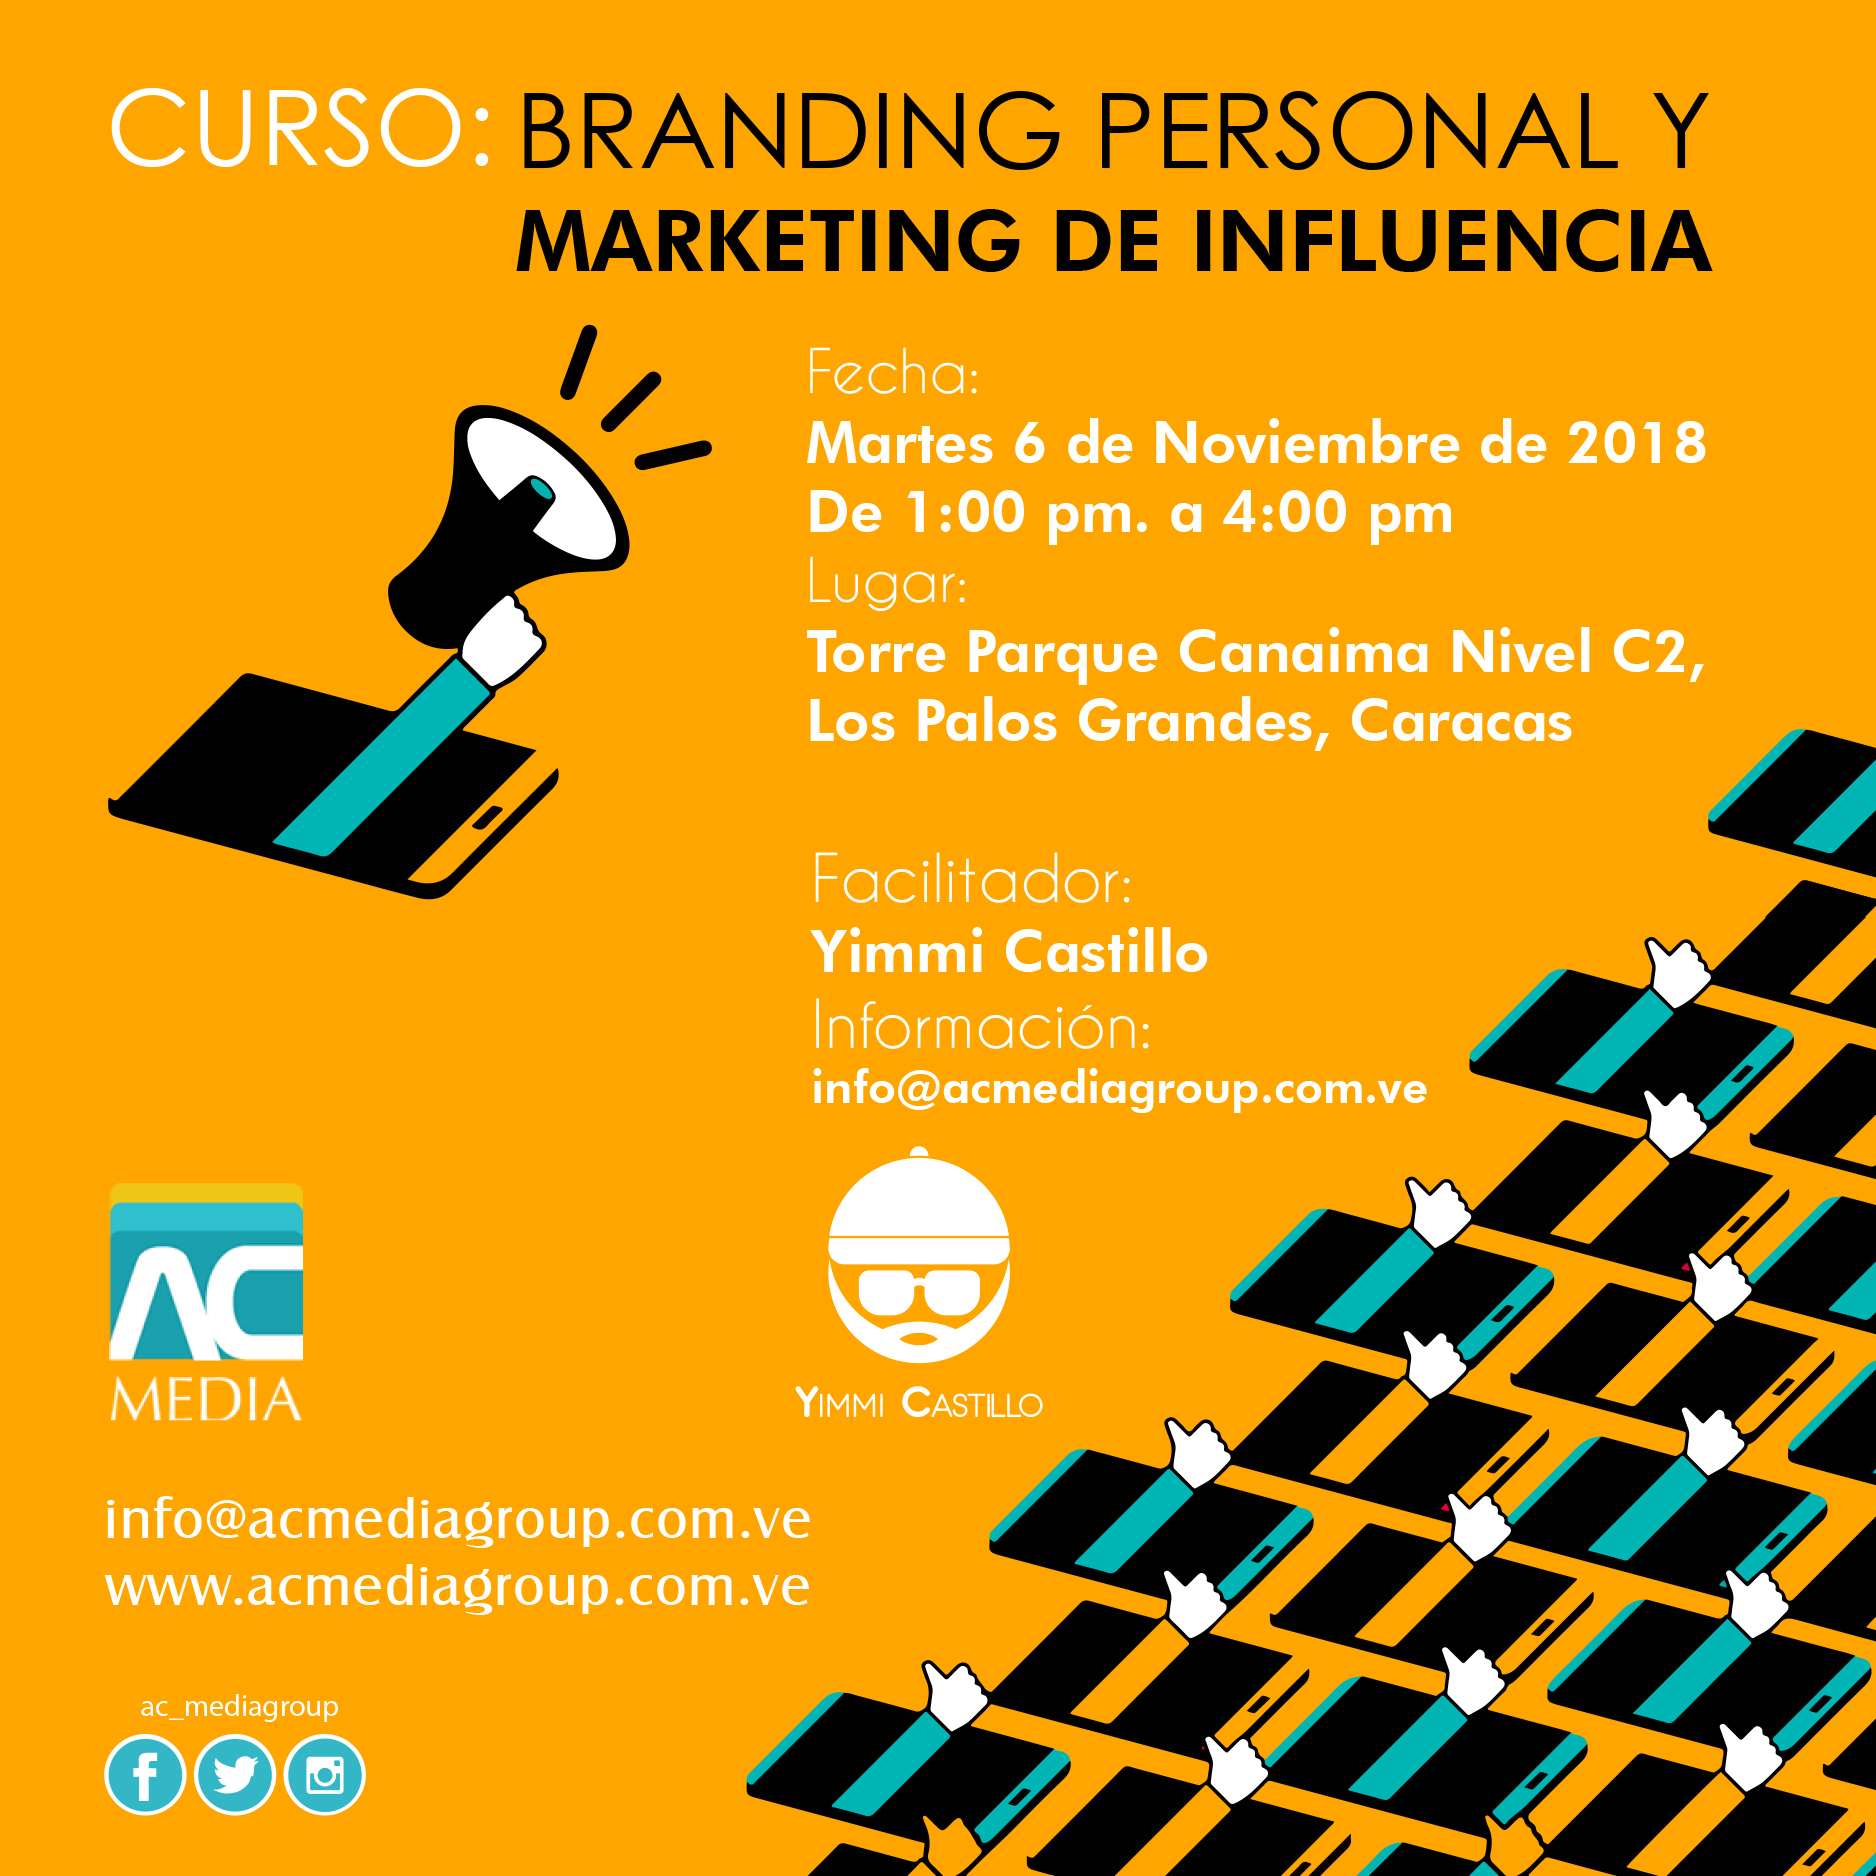 Curso de Branding Personal y Marketing de Influencia